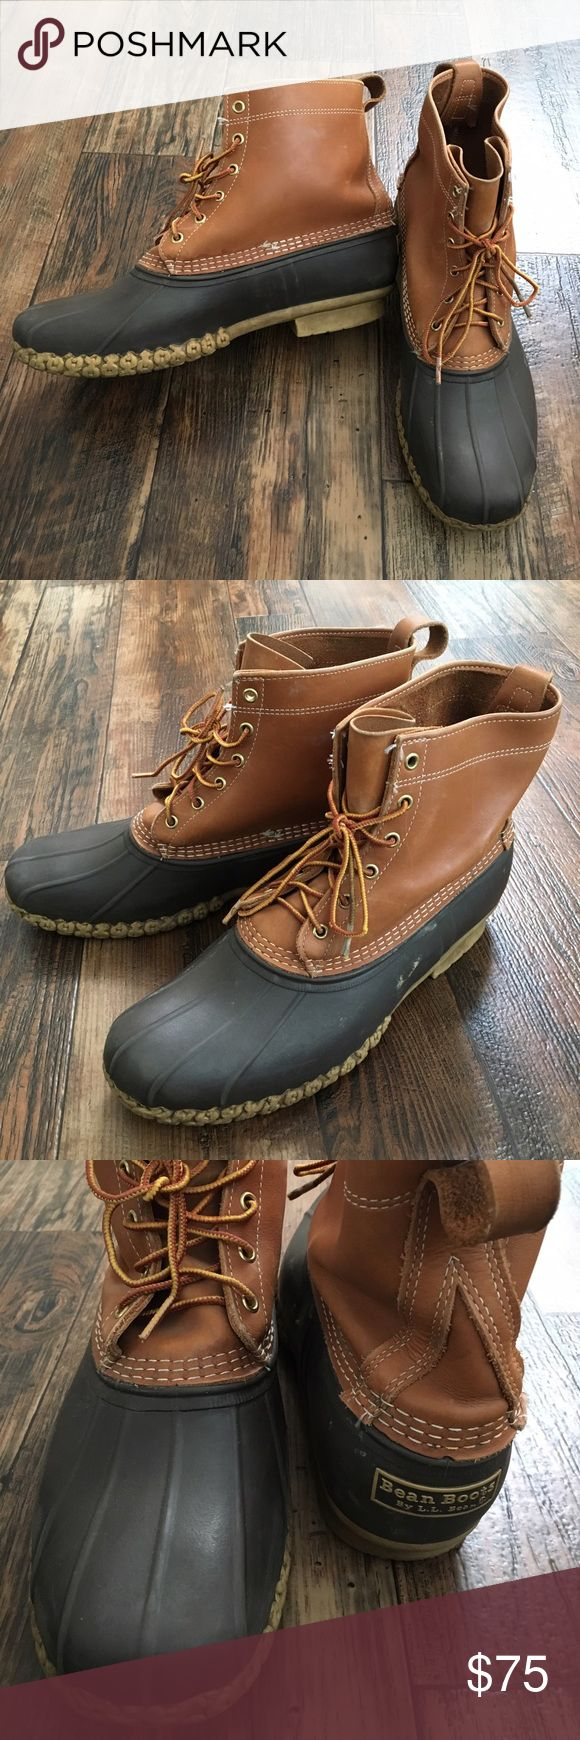 "Classic LL Bean Maine Hunting Duck Boots Sz 13 Classic LL Bean ""Bean Boots""   Men's Sz 13  In great condition.  2 tone- rubber bottom, leather upper boots  Retail is $120 L.L. Bean Shoes Boots"